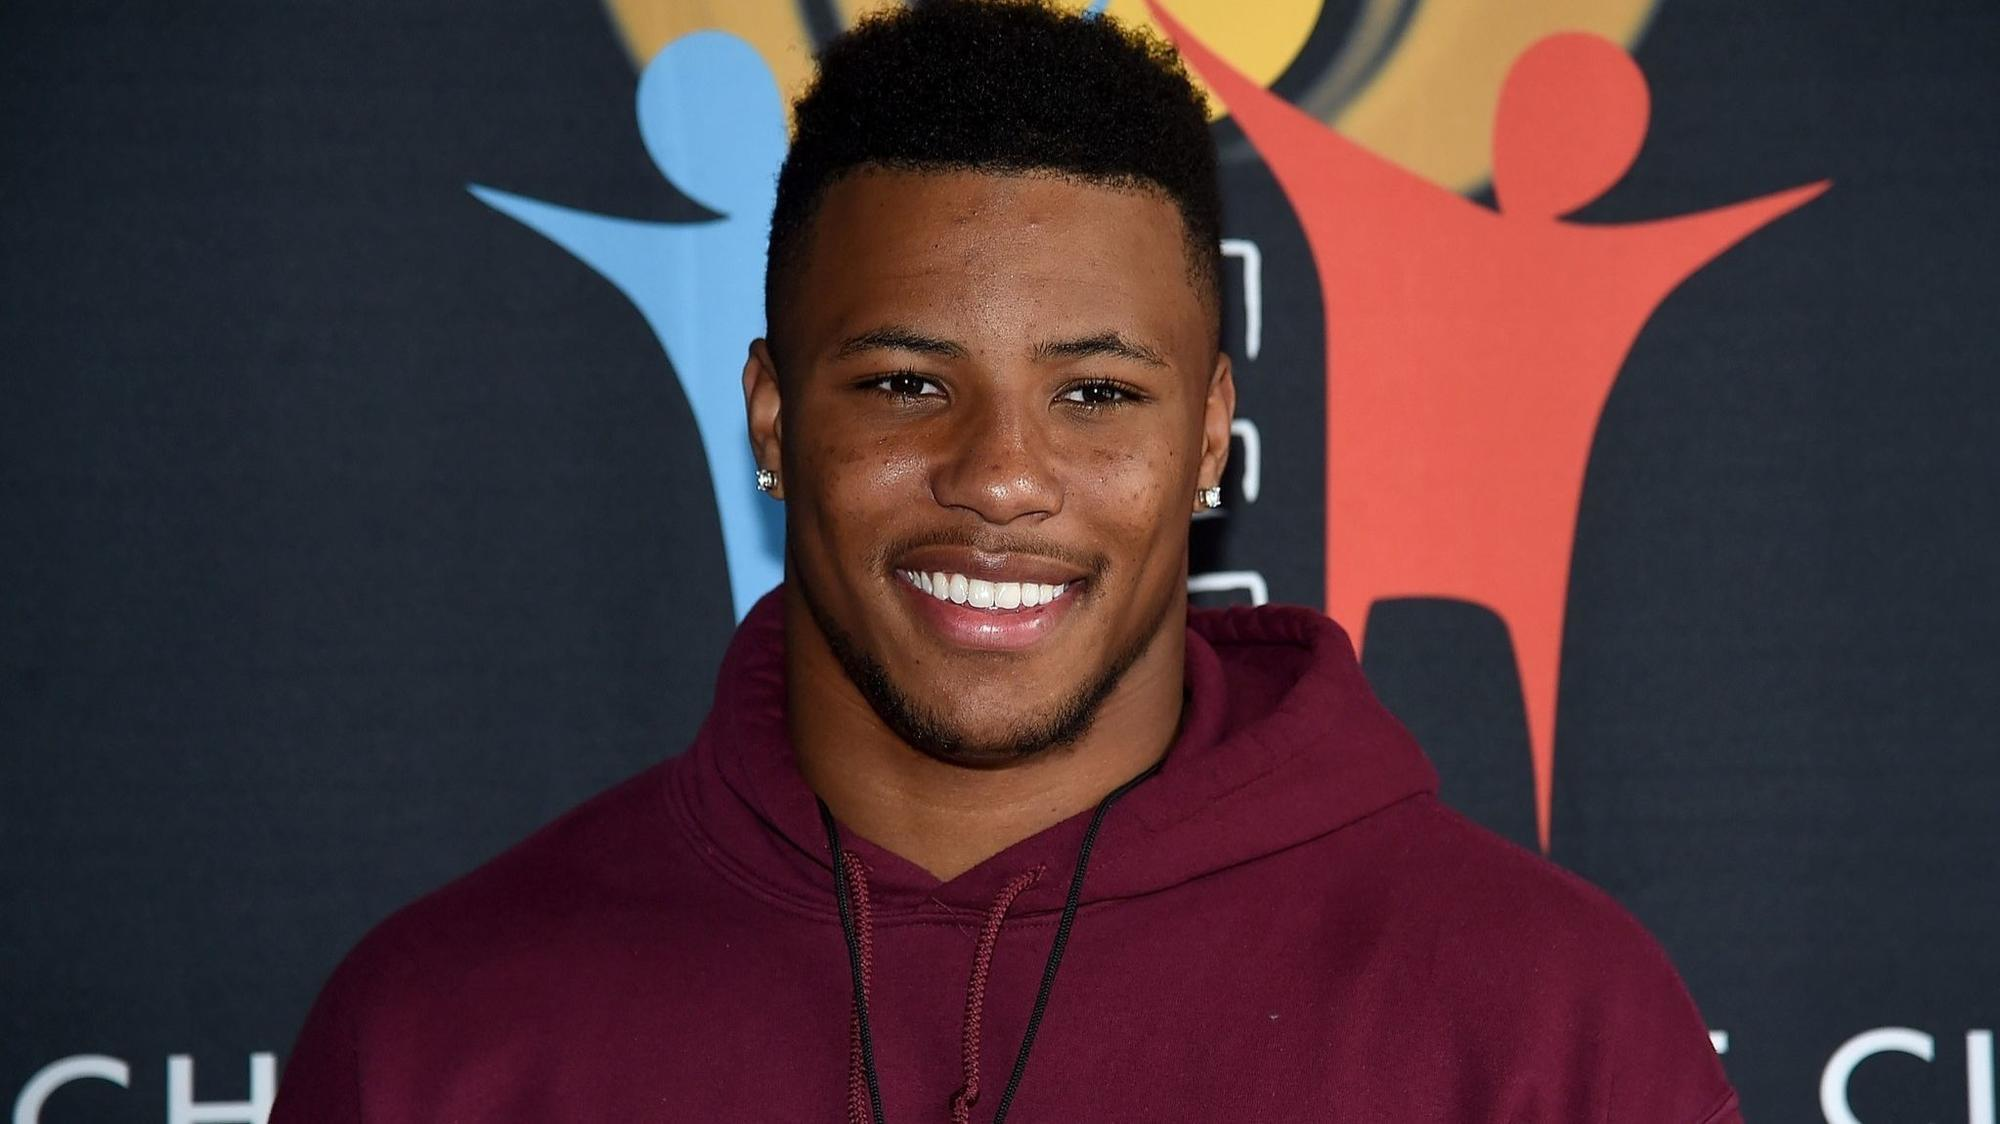 Saquon Barkley and his 'SaQuads' to appear in ESPN's Body ...